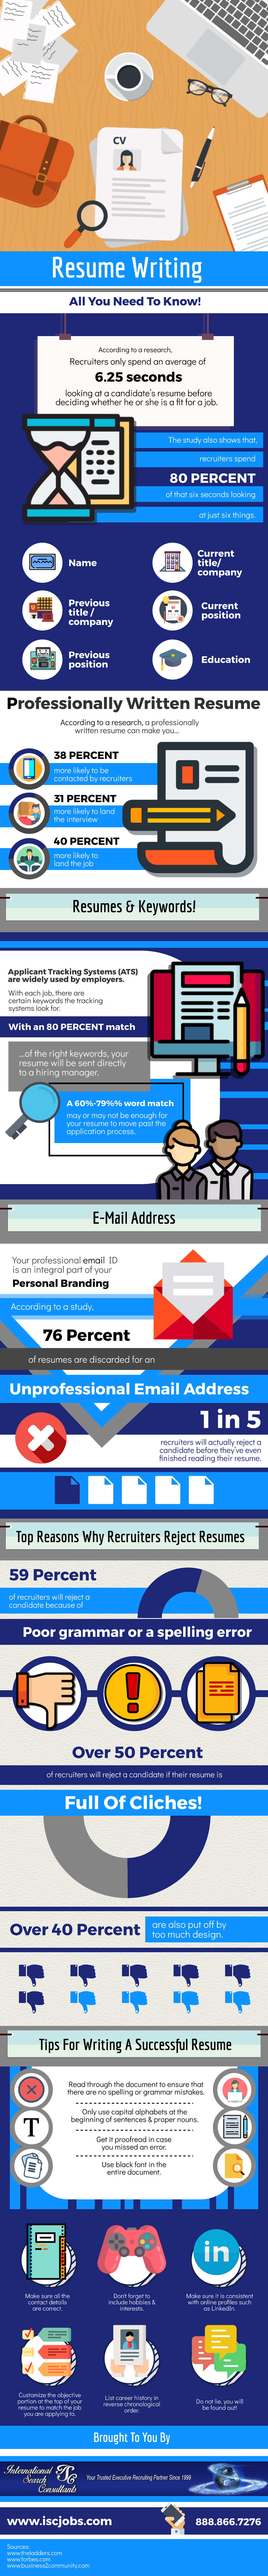 Resume Writing Tips Infographic